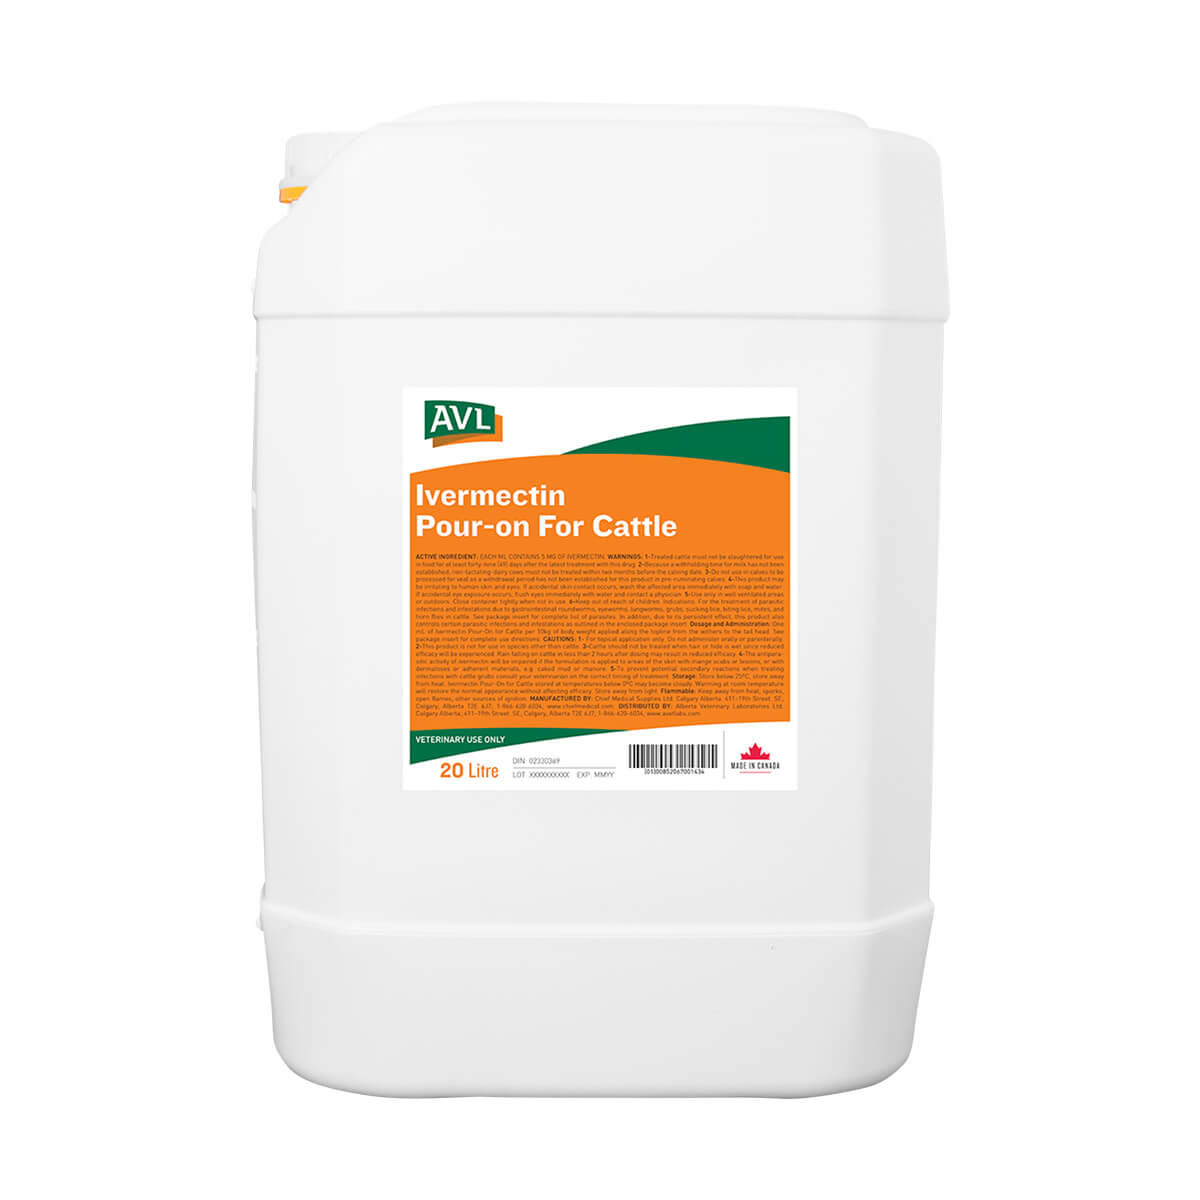 AVL Ivermectin Pour-on For Cattle - 20 L